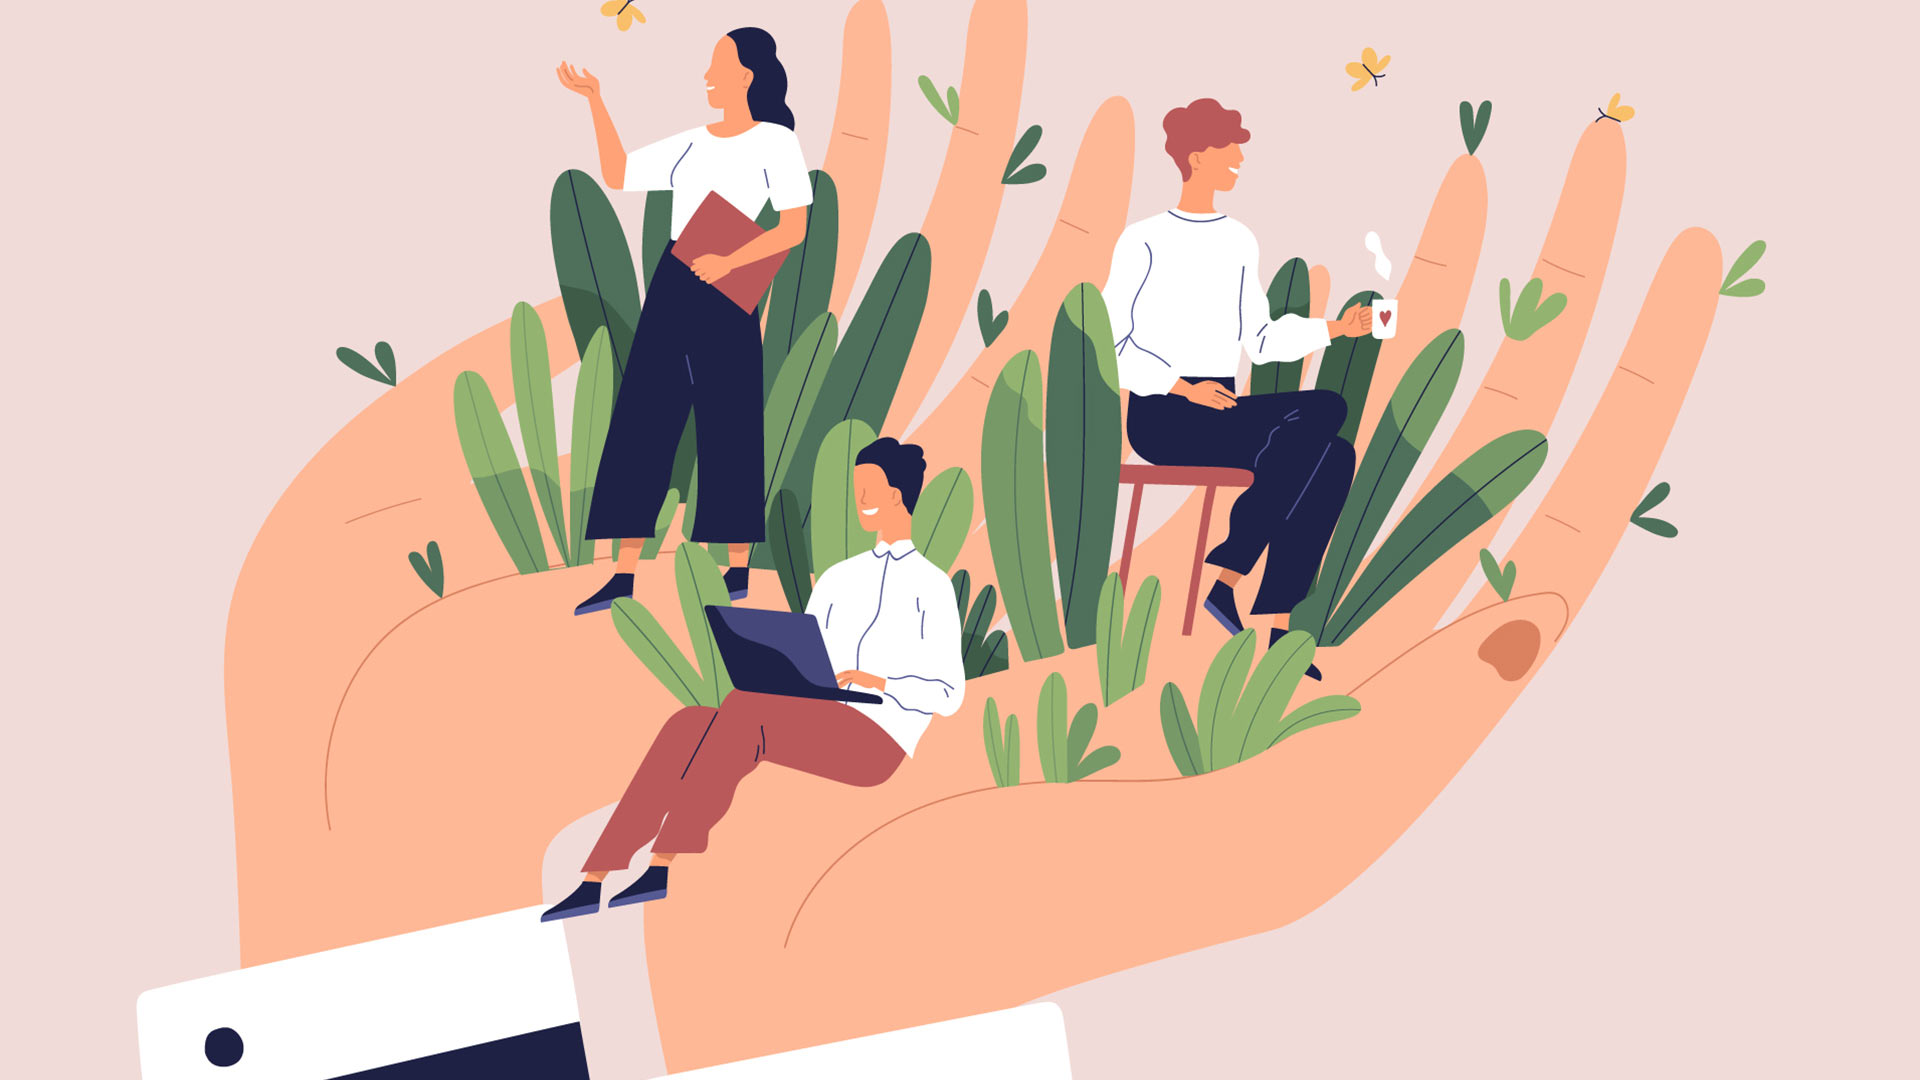 Illustration showing wellbeing in the workplace with 3 employees sitting in a lush oasis stemming from the director's hands